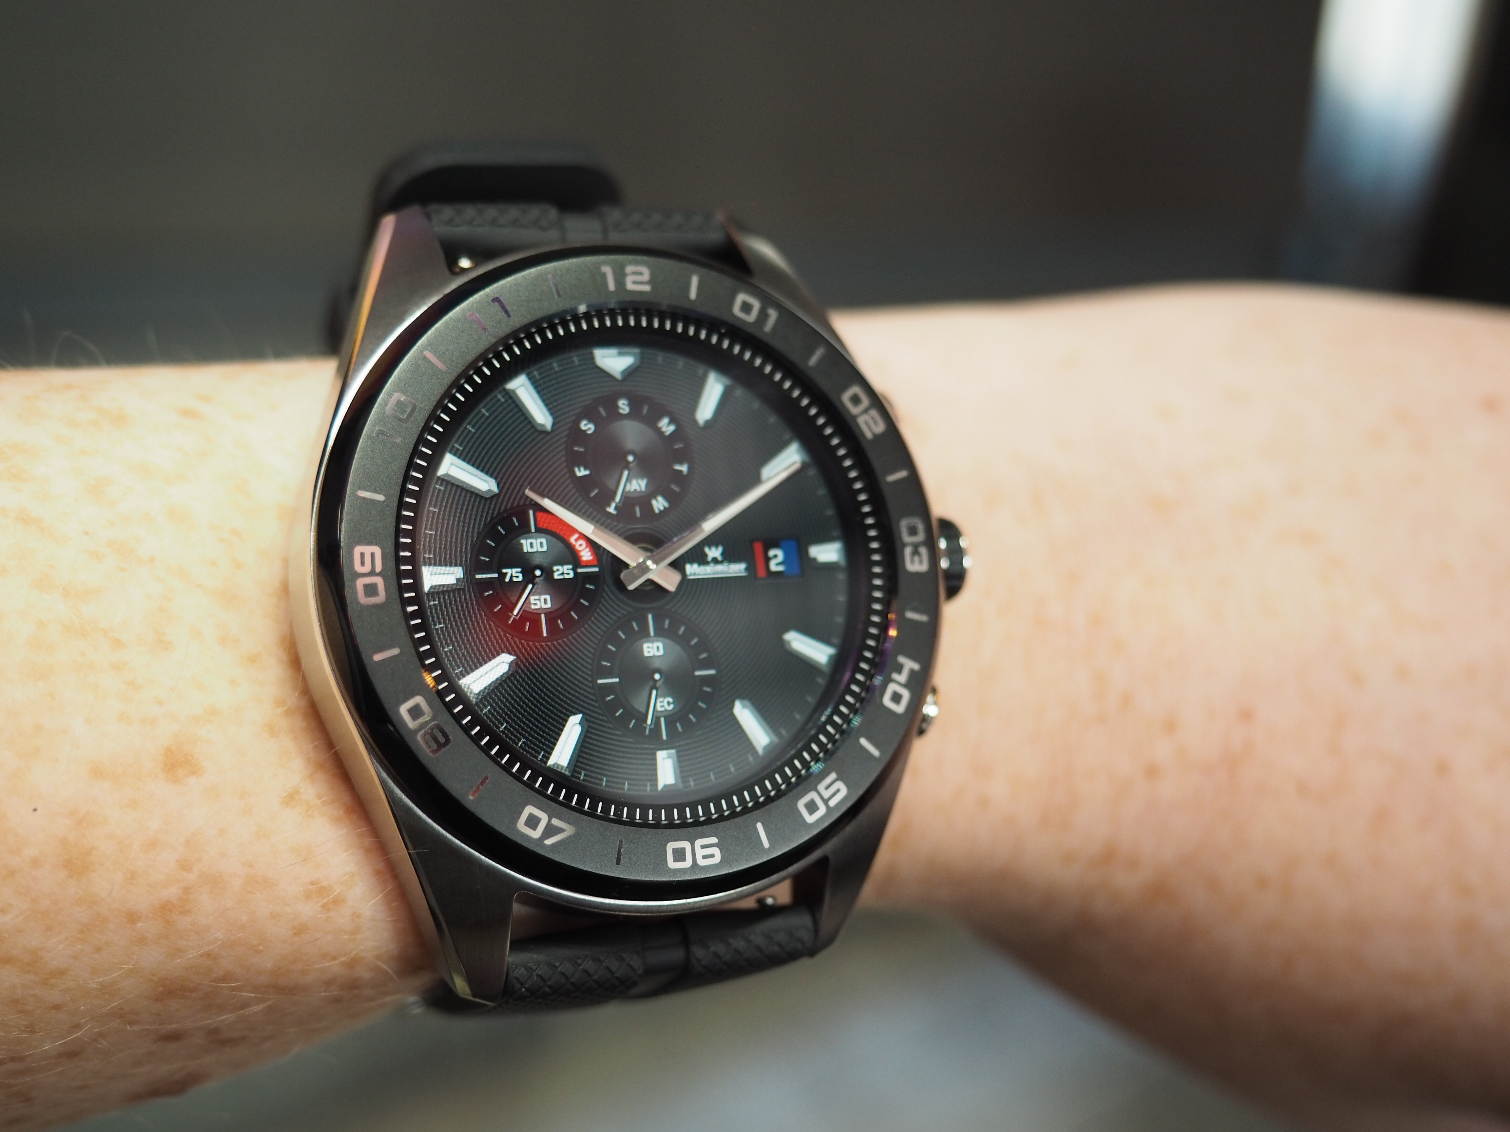 LG's Watch W7 Puts Mechanical Hands on a Touch Screen